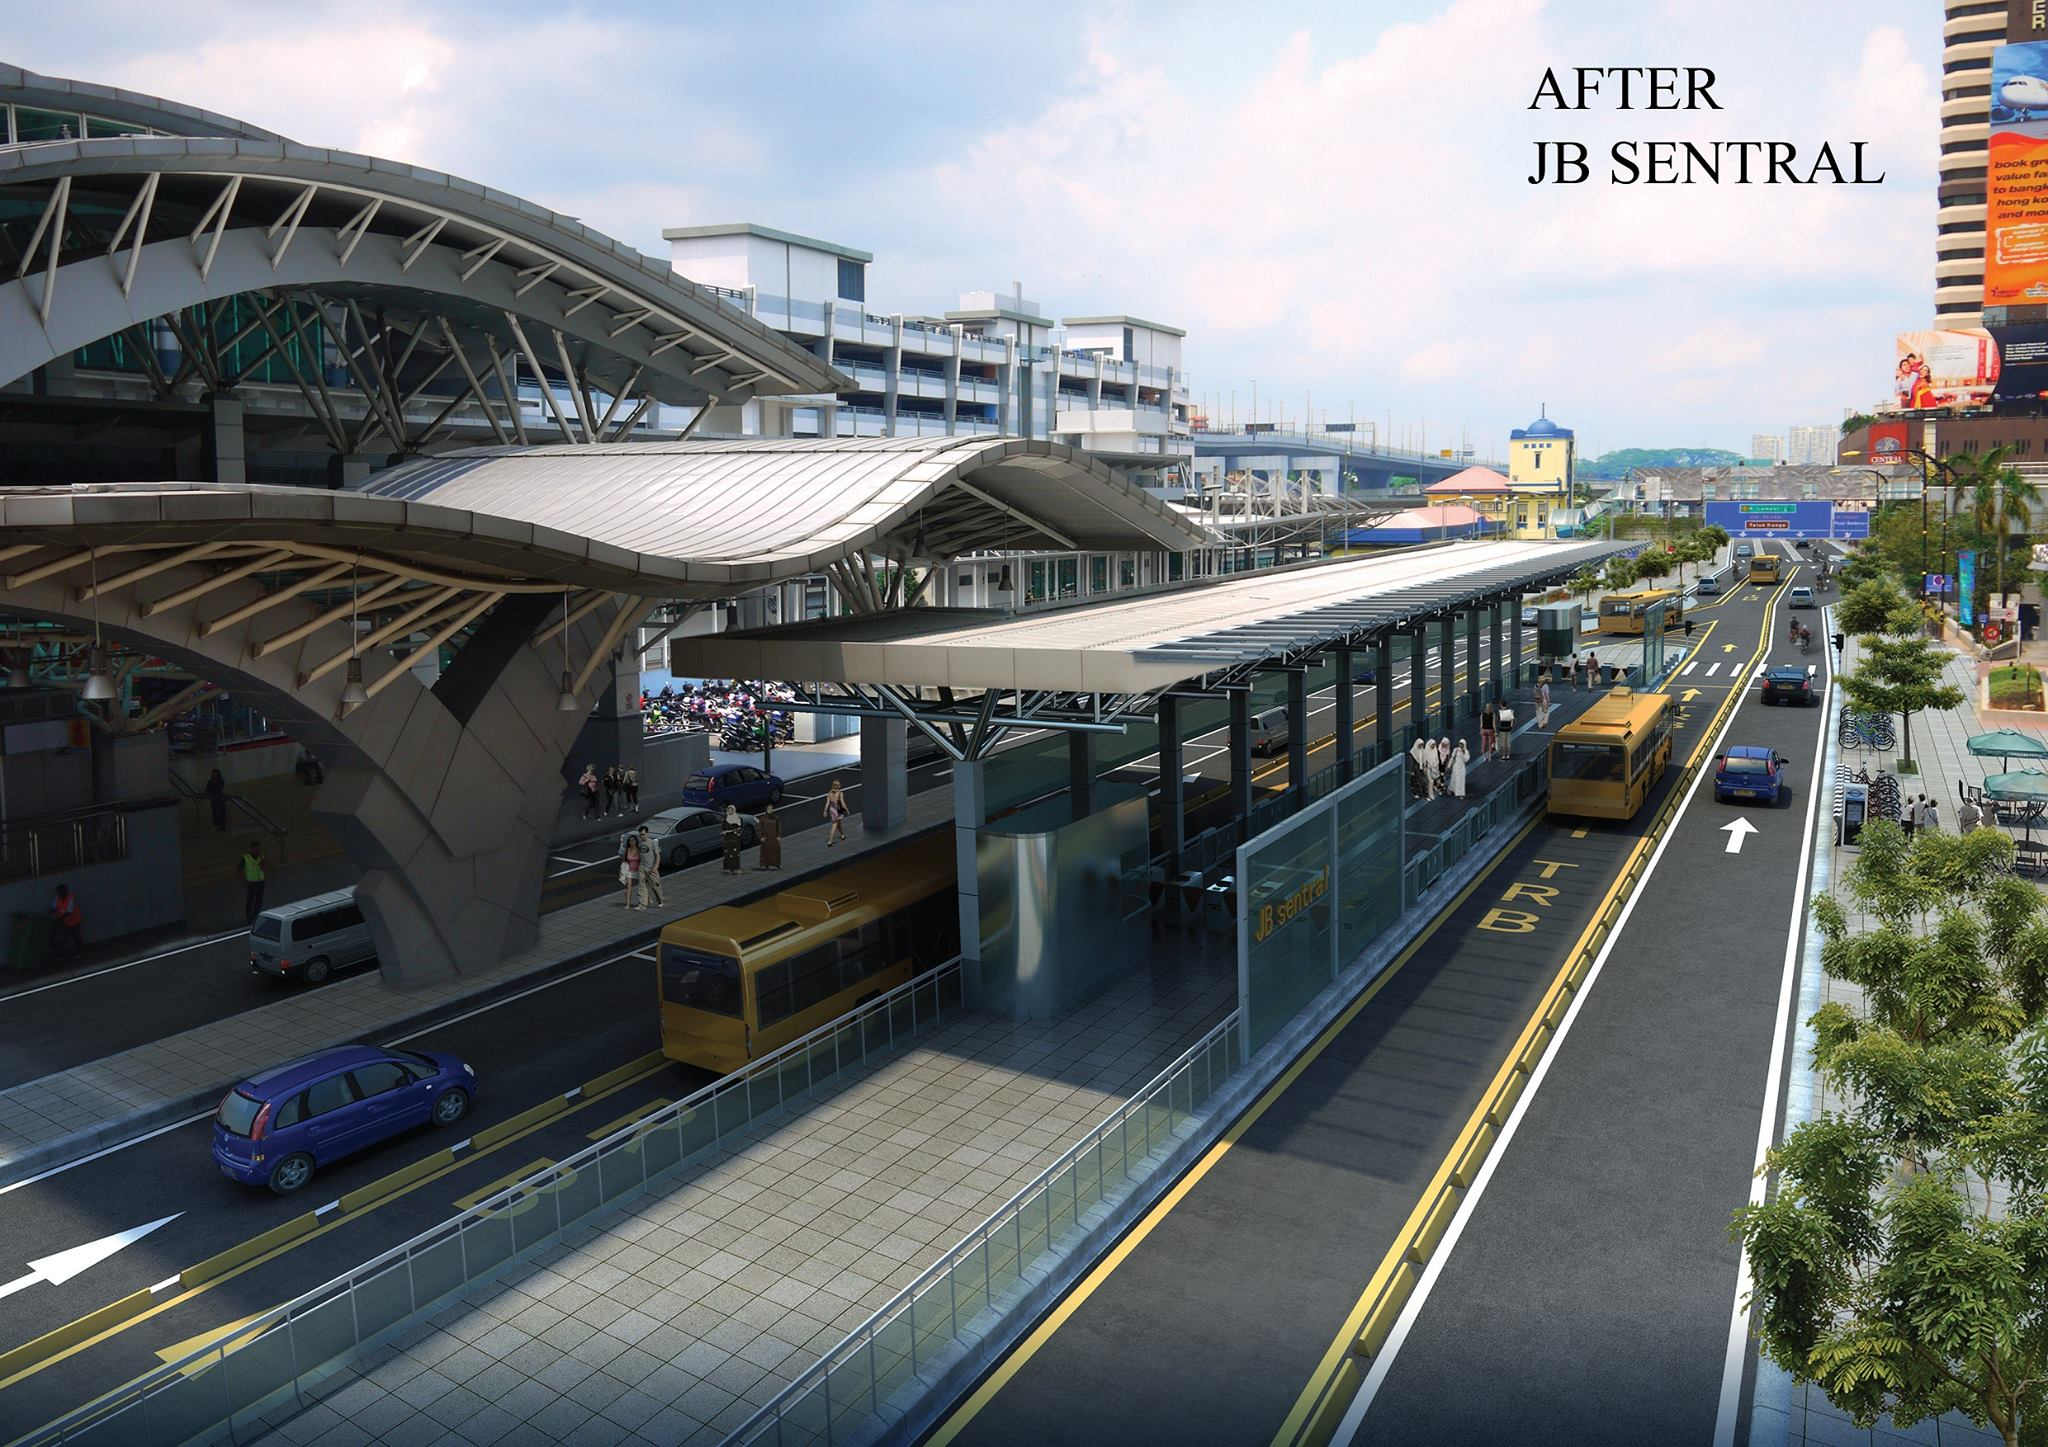 IMBRT Project Gears Up for Pilot Testing in April 2021